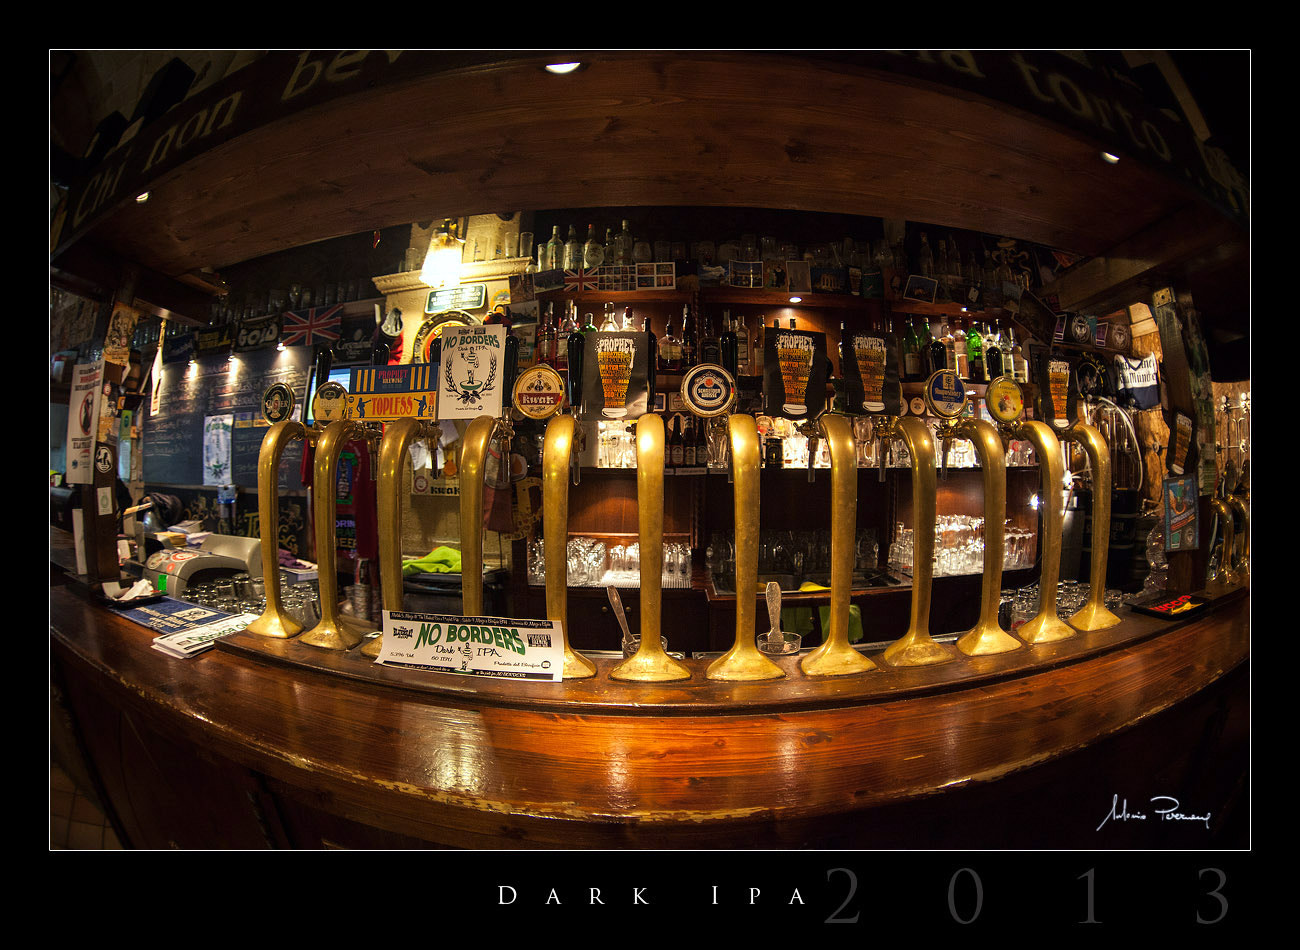 Photograph Dark Ipa by Antonio Perrone on 500px